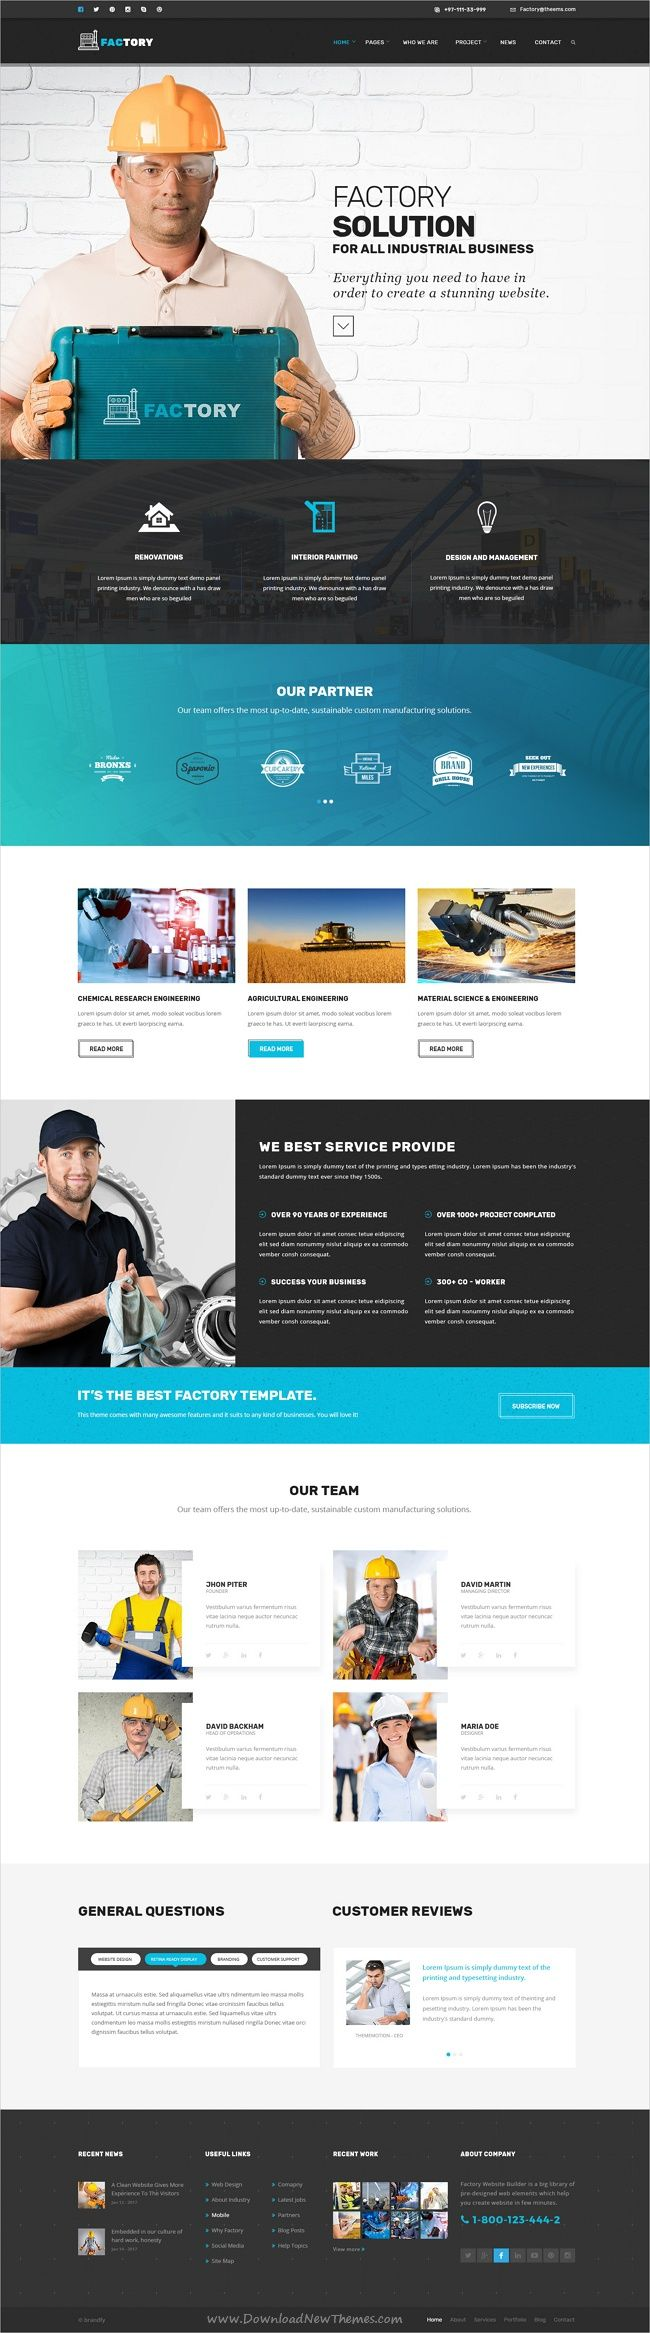 Factory is a modern design #PSD template for #industrial, mechanical, engineering, construction #company websites download now➩ https://themeforest.net/item/factory-industrial-business-psd-template/19035871?ref=Datasata